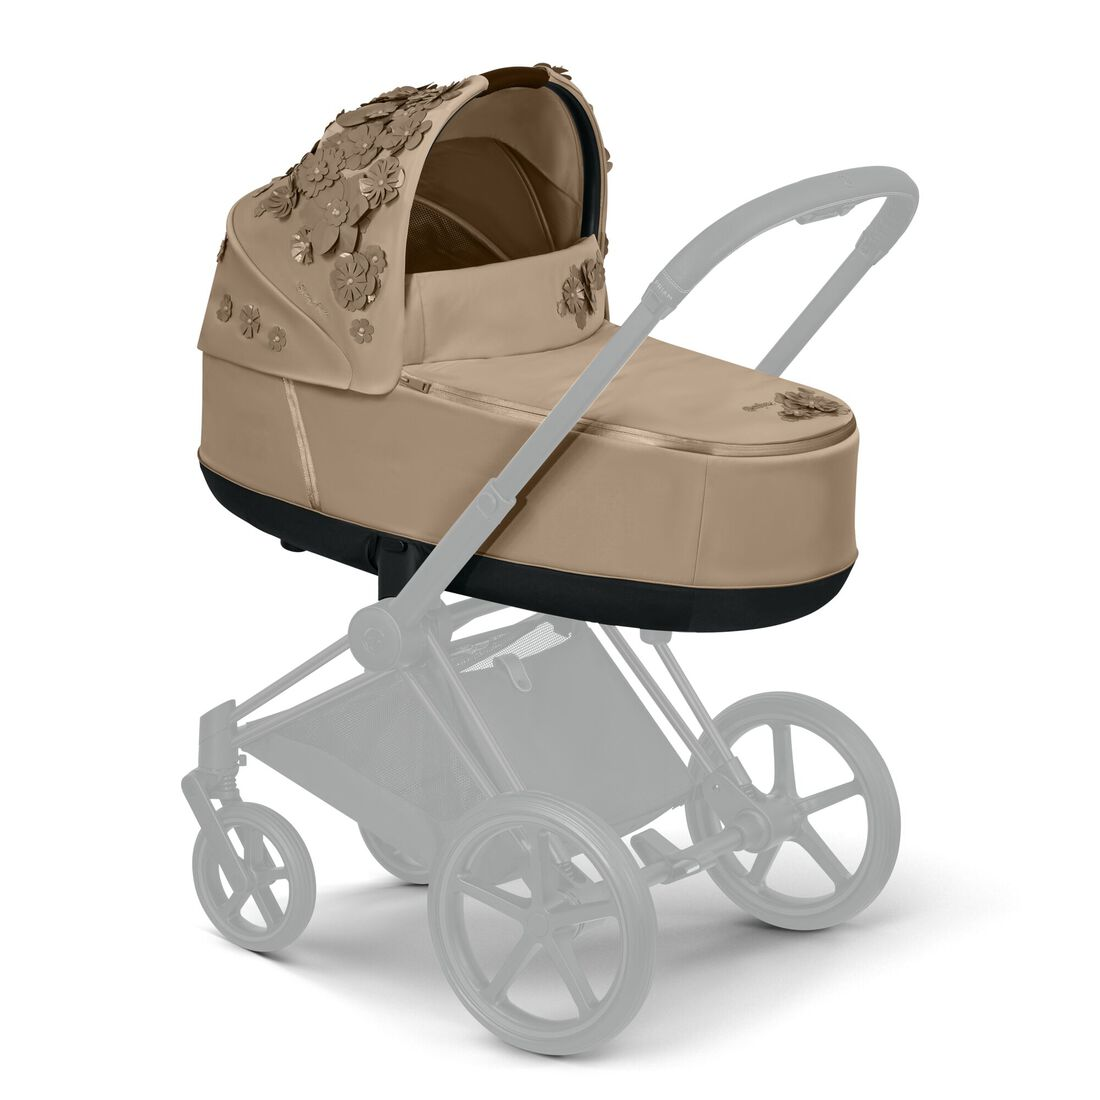 CYBEX Priam Lux Carry Cot - Nude Beige in Nude Beige large image number 5